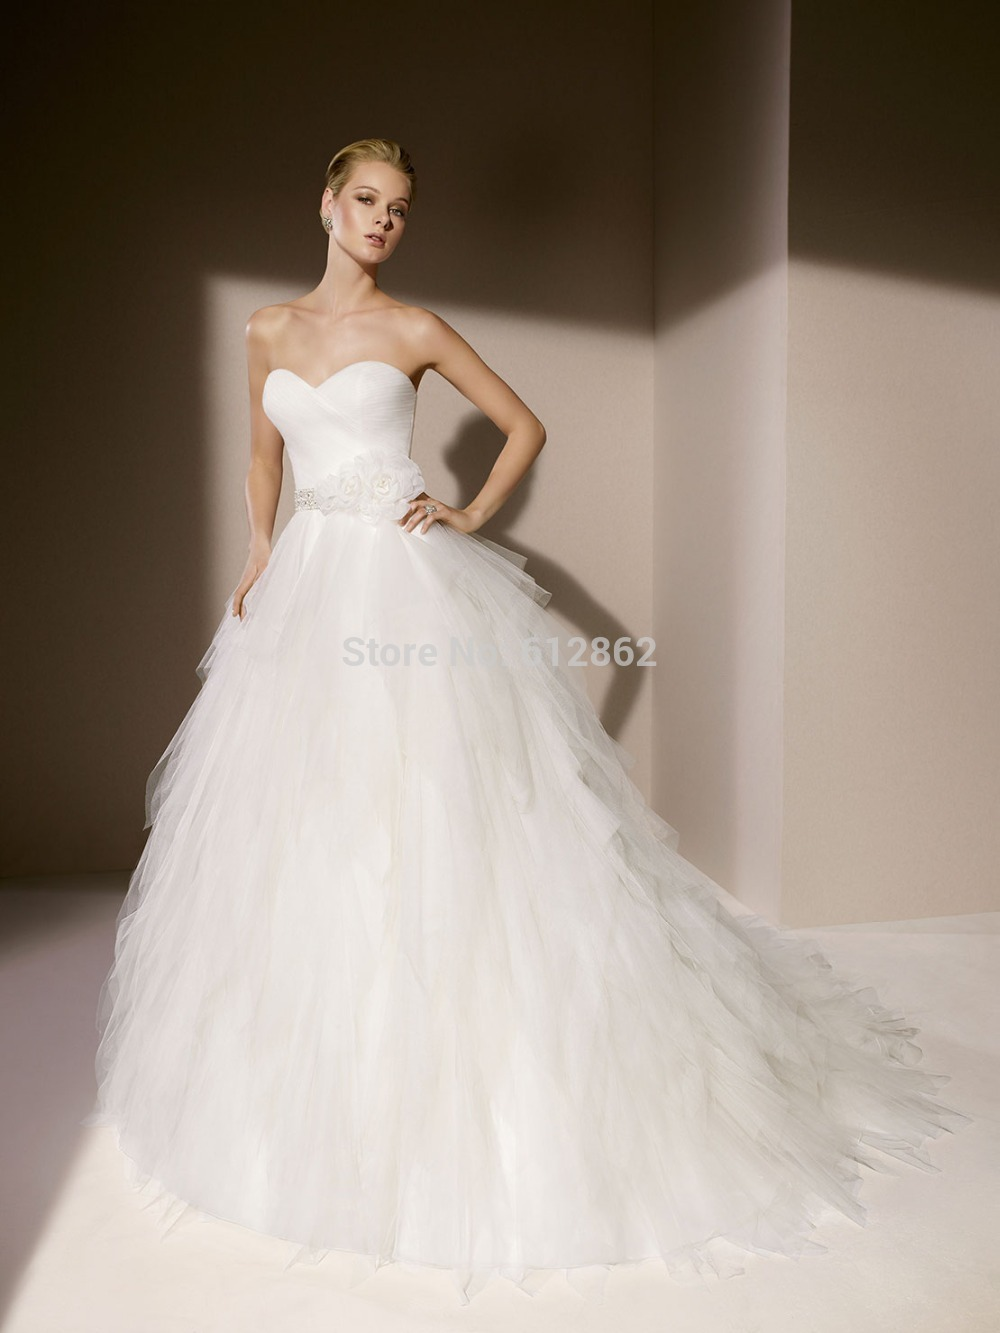 Simple strapless sweetheart tulle low cut back long train latest simple strapless sweetheart tulle low cut back long train latest wedding dress in wedding dresses from weddings events on aliexpress alibaba group ombrellifo Images